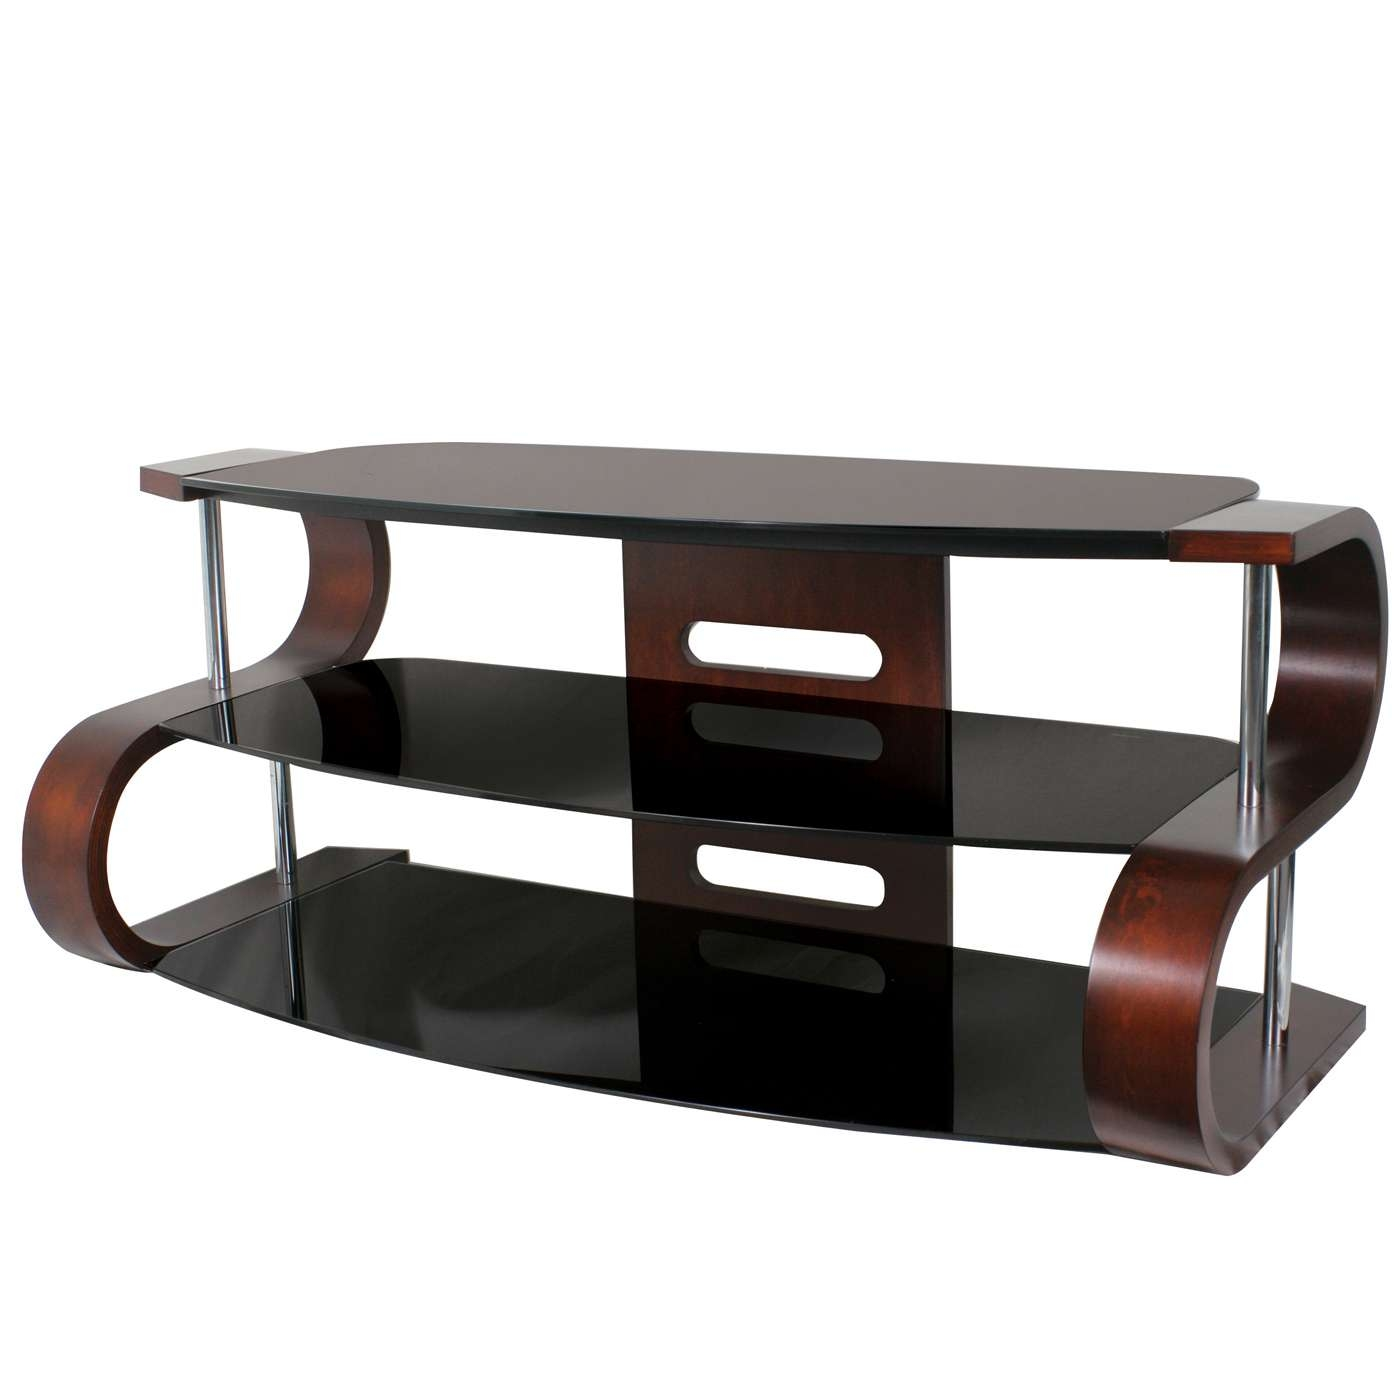 Lumisource Tv Sw Ts 120 Metro Series 120 Tv Stand | Lowe's Canada Within Modern Glass Tv Stands (View 11 of 15)